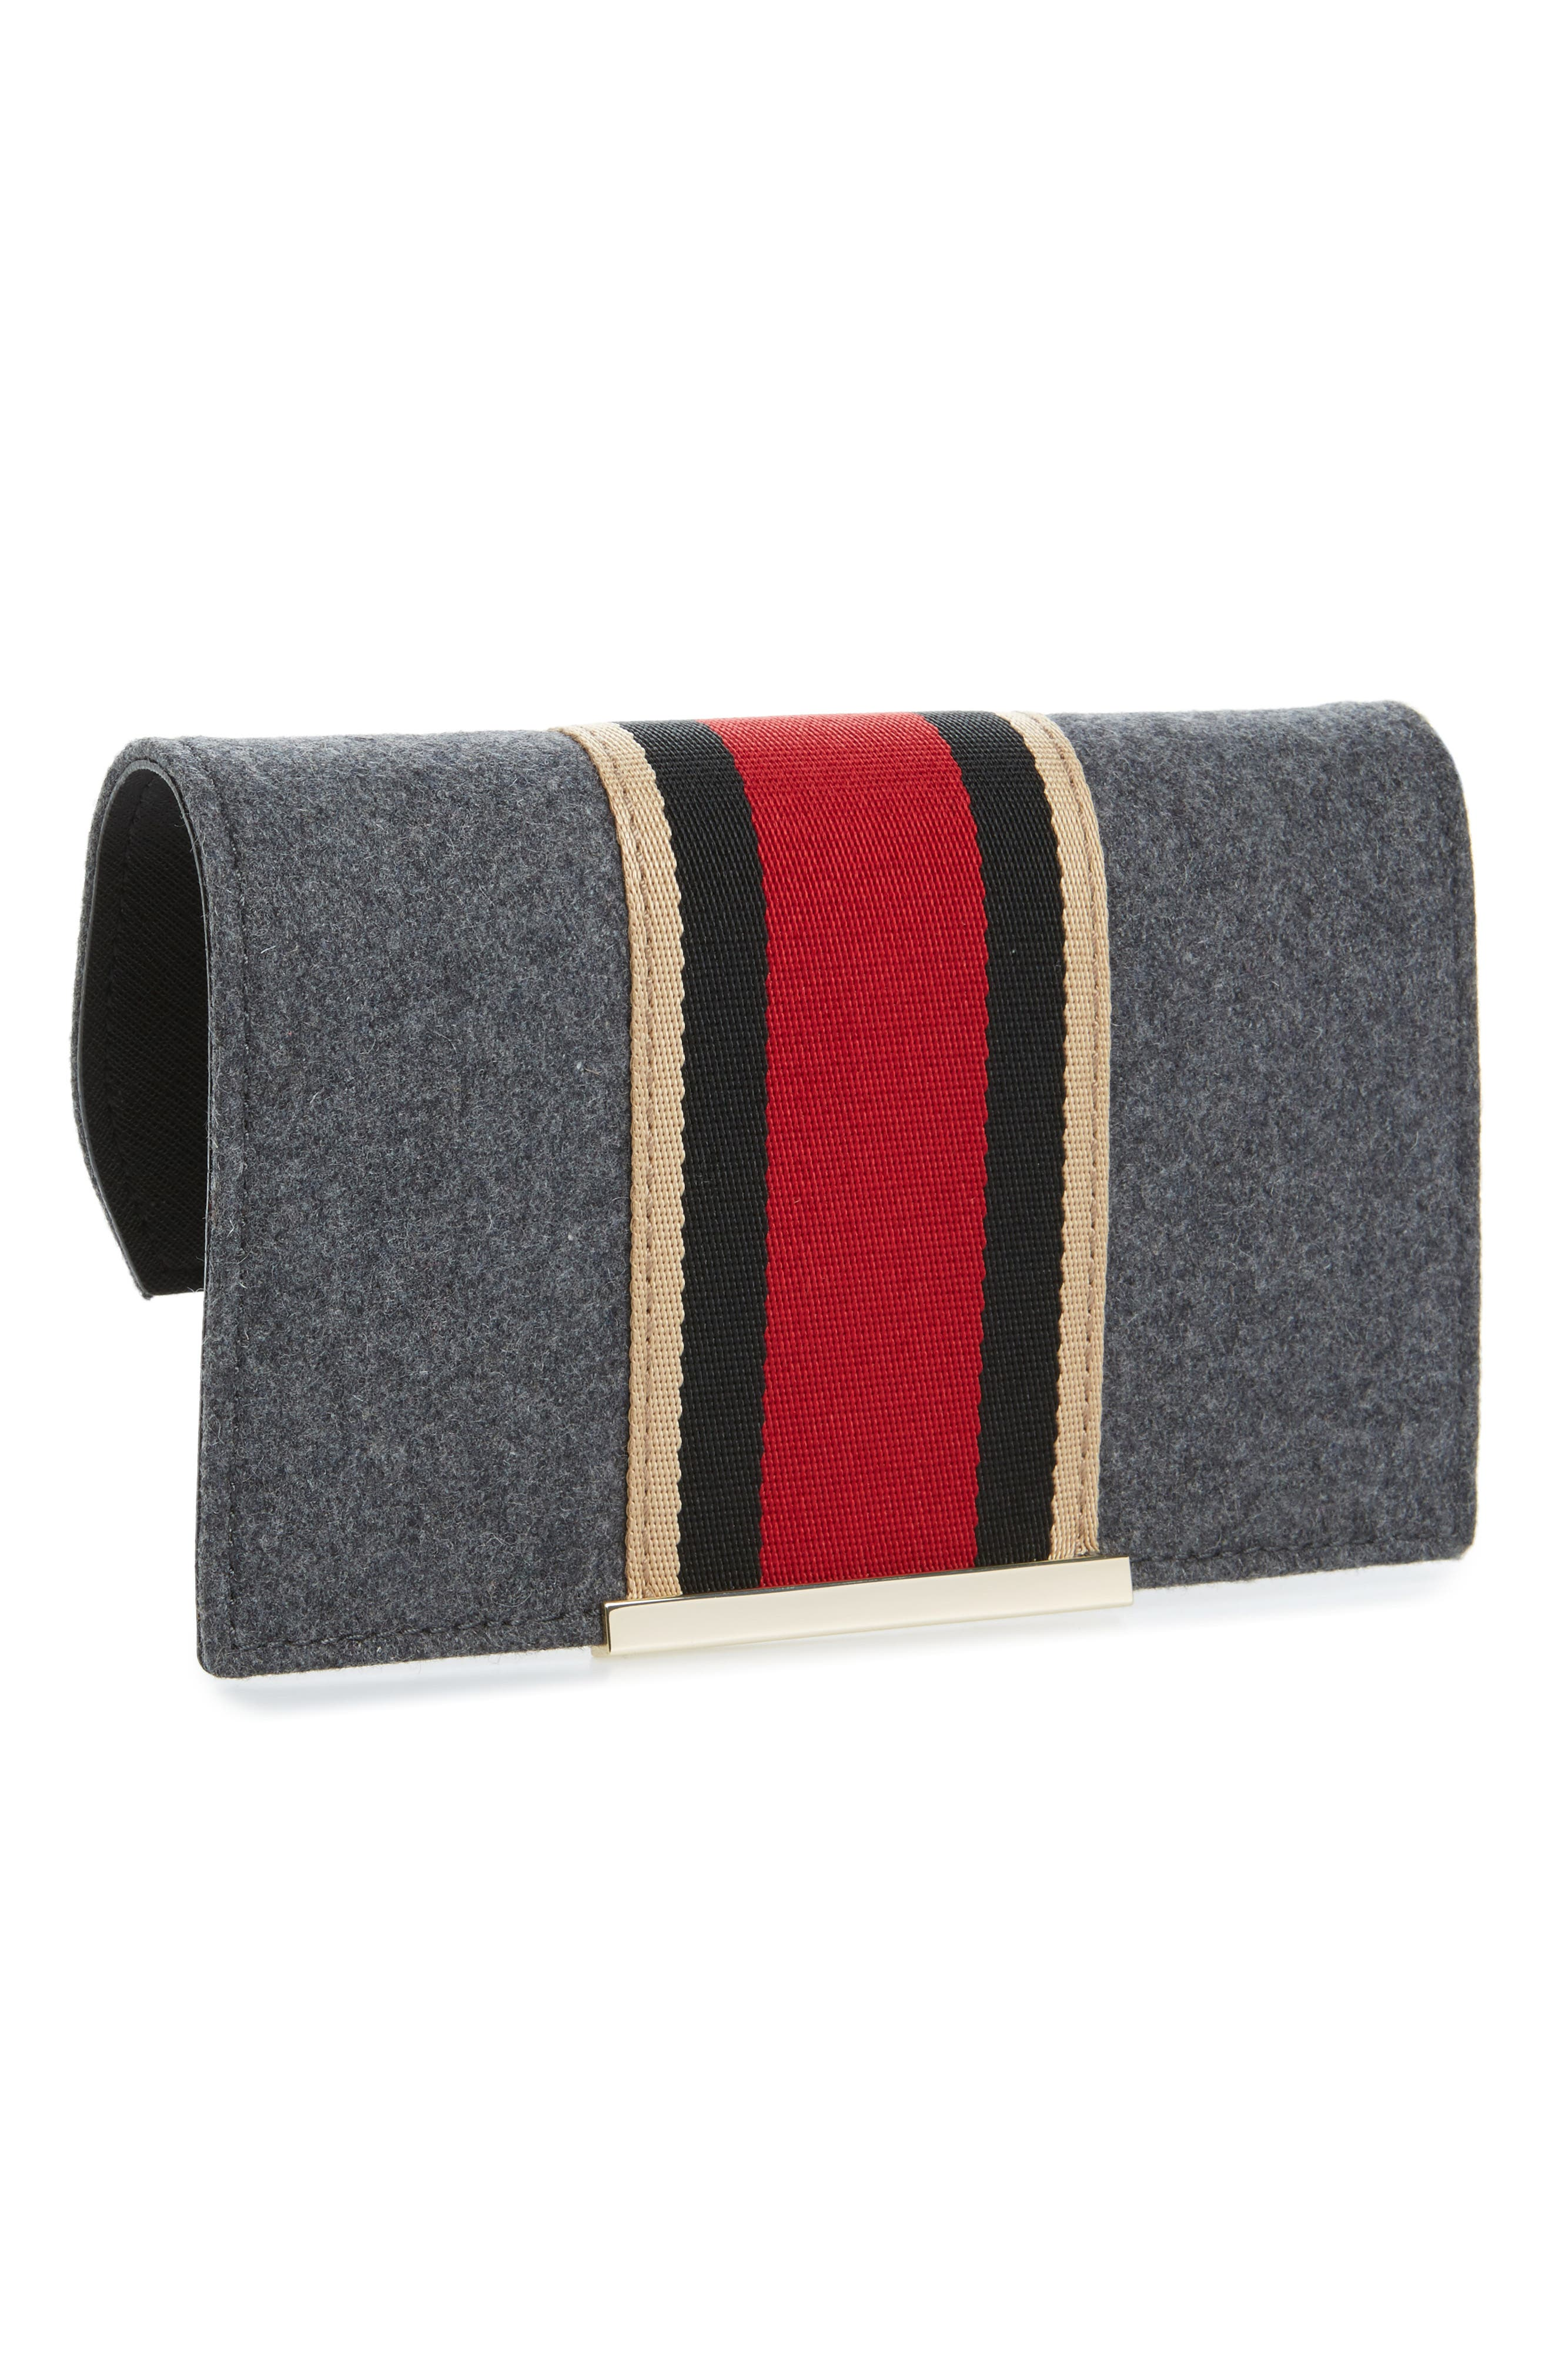 make it mine flannel stripe snap-on accent flap,                             Main thumbnail 1, color,                             Charcoal